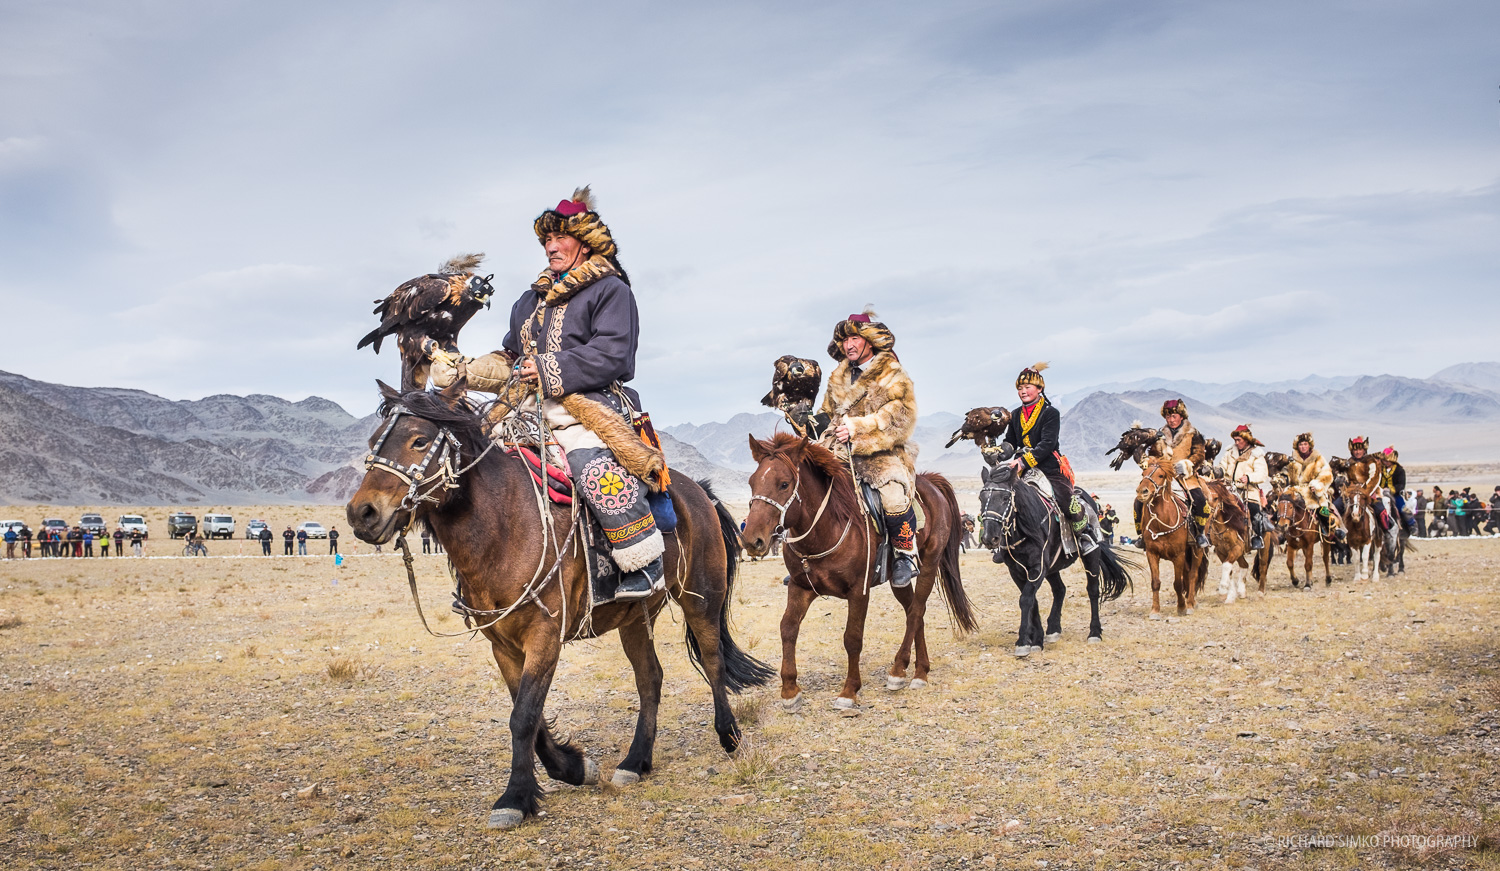 Festival open ceremony starts with presenting and parading all the eagle hunter competitors